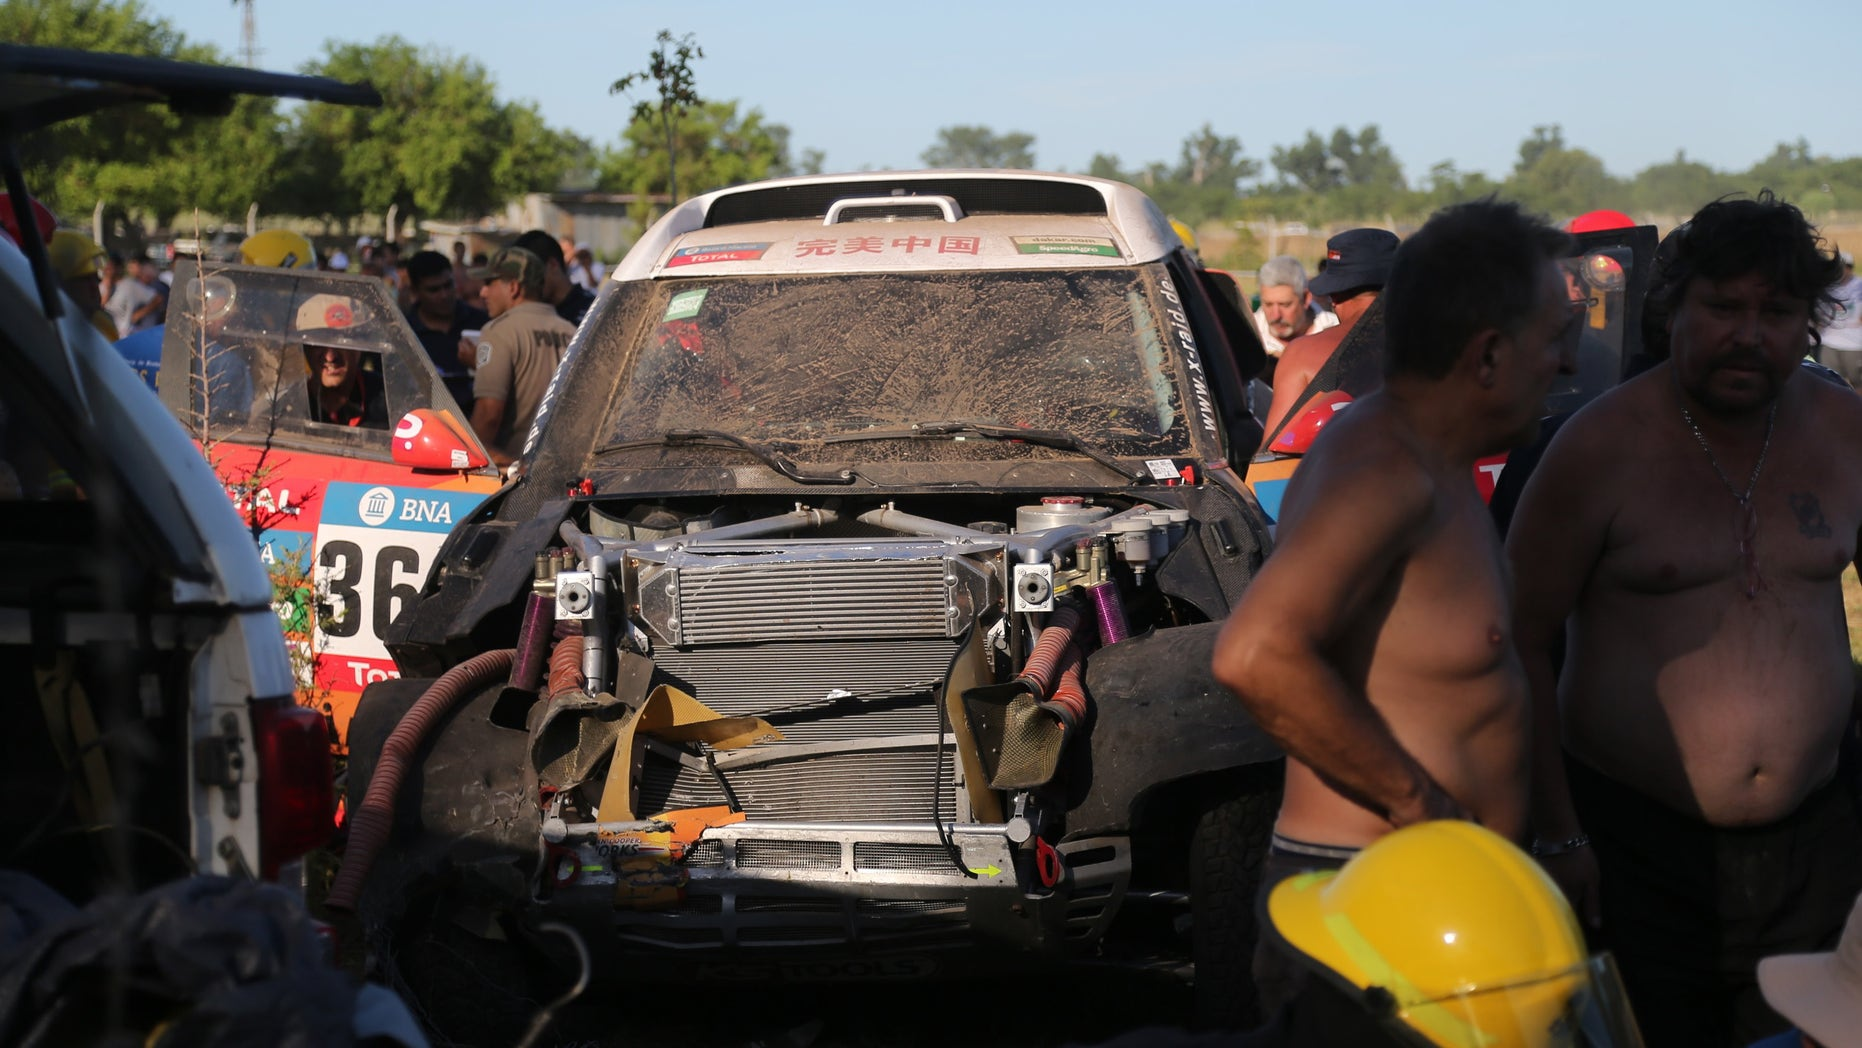 China's Guo Meiling's, X-Raid Team's damaged Mini, is seen after an accident in which at least 8 spectators were injured, during the Buenos Aires-Rosario prologue stage of the Dakar Rally 2016, in Arrecifes, Argentina, Saturday, Jan. 2, 2016. Guo Meiling is the first Chinese female driver to participate in the rally. (AP Photo/Jorge Saenz)